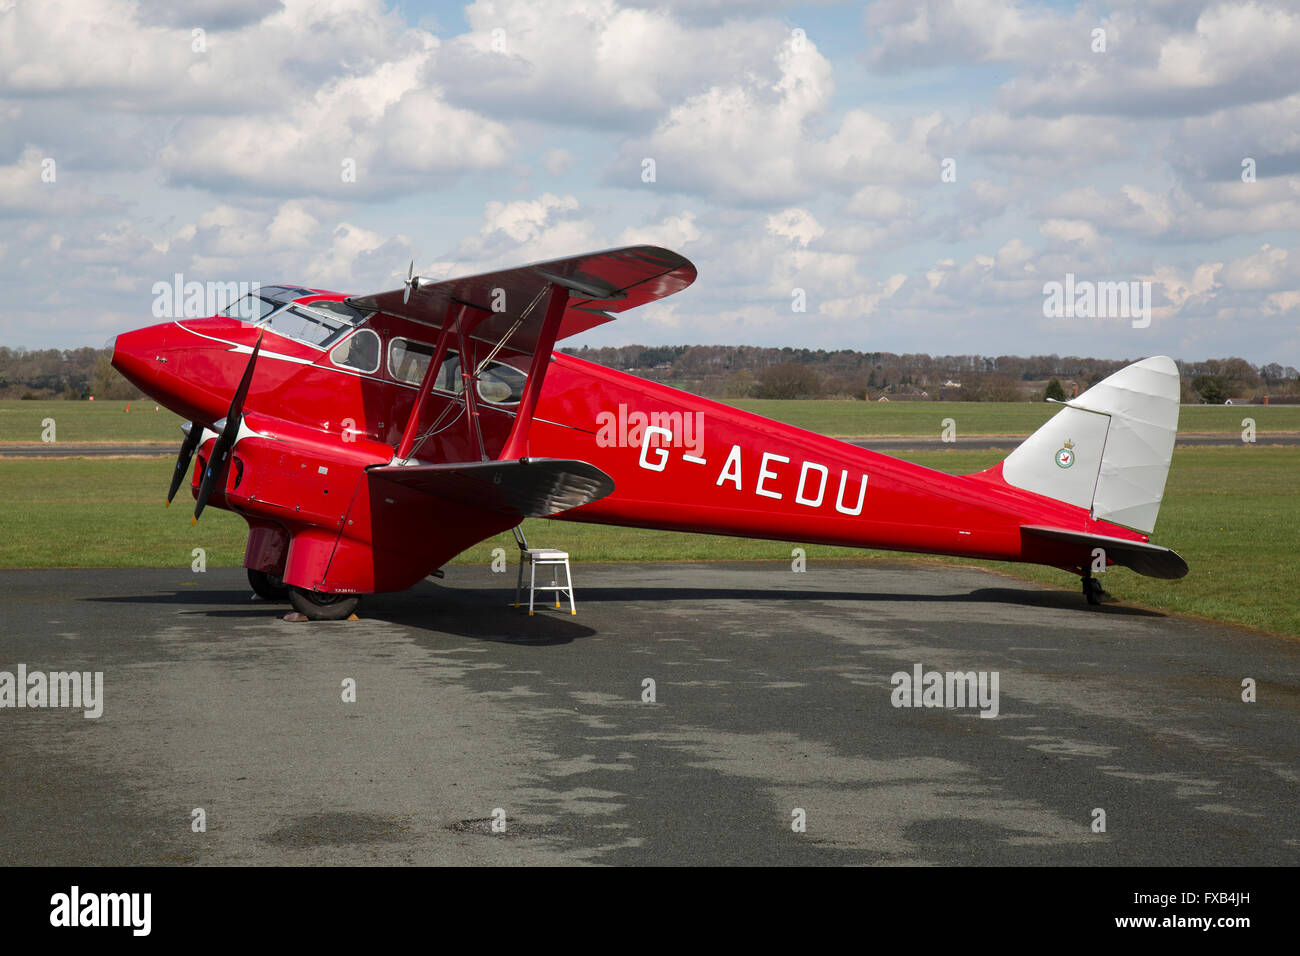 De Havilland DH.90 Dragonfly, G-AEDU. The de Havilland DH.90 Dragonfly was a 1930s British twin-engined luxury touring - Stock Image